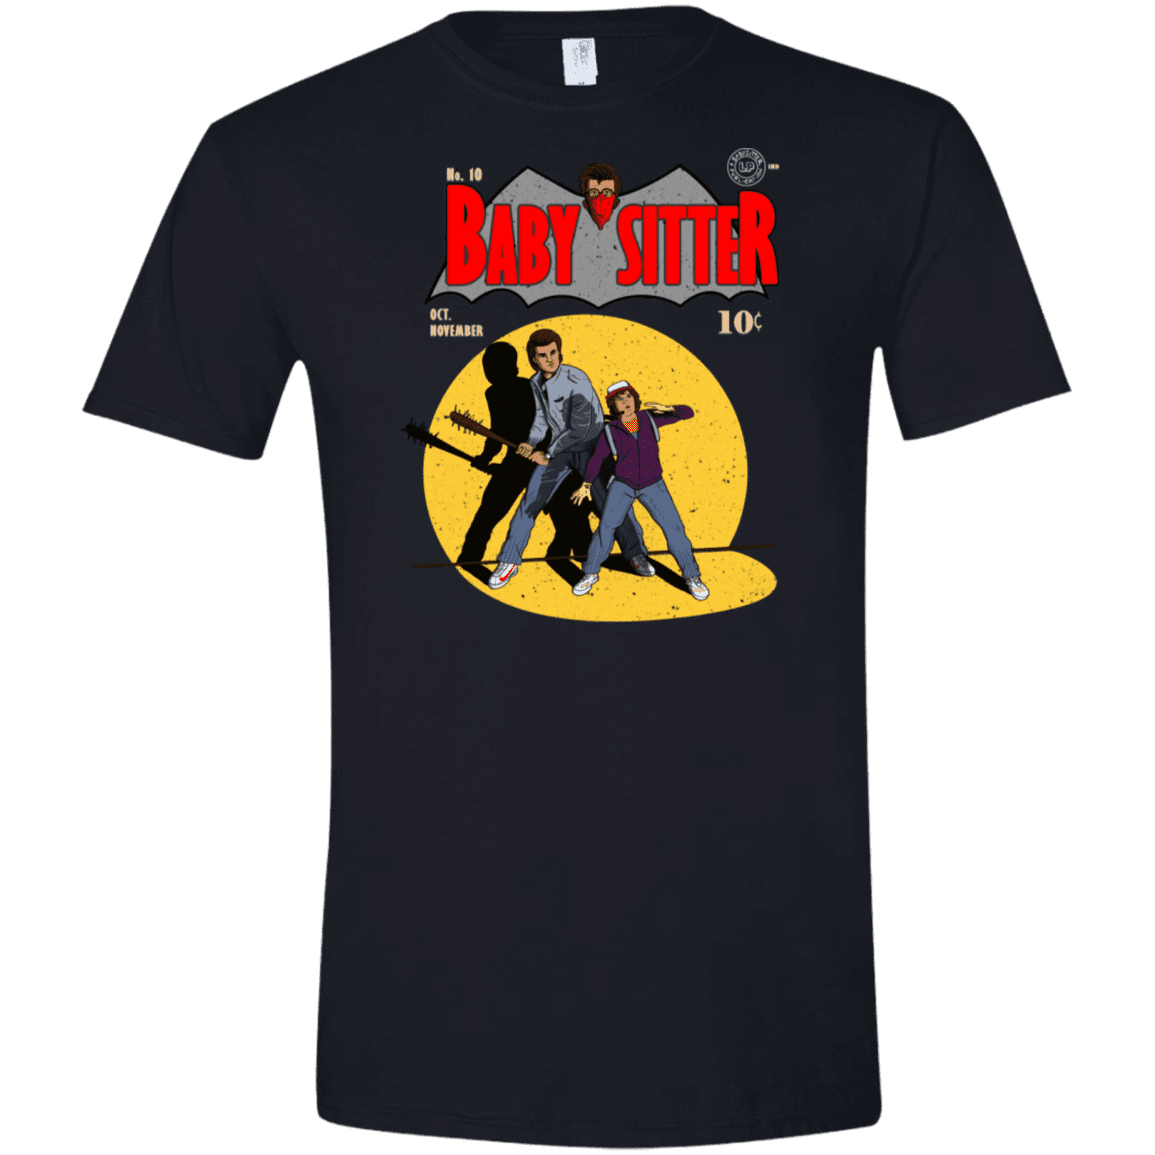 T-Shirts Black / X-Small Babysitter Batman Men's Semi-Fitted Softstyle